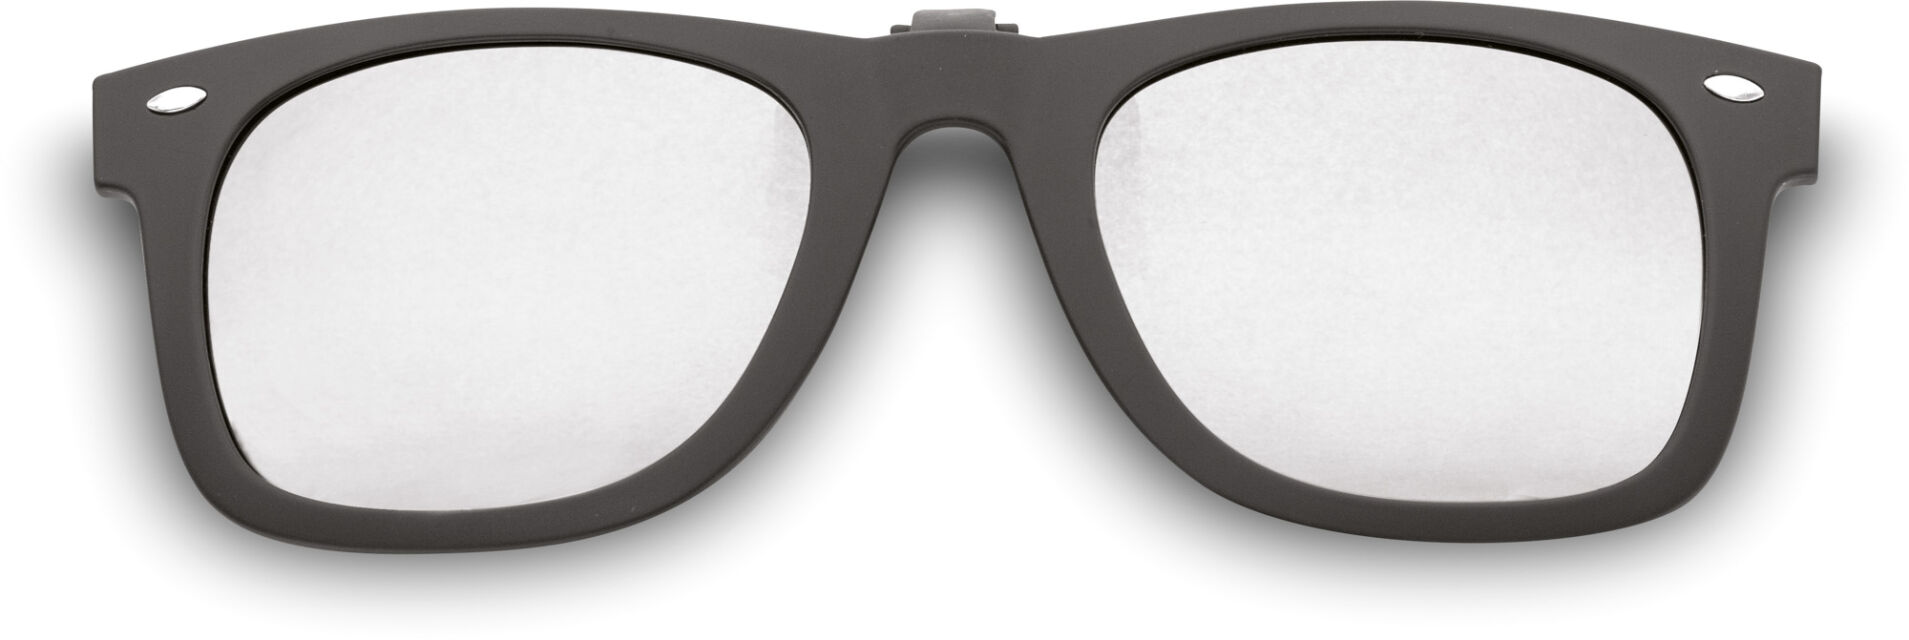 WayCool Sr. Flip-Ups Black/Silver Mirror, Polarized